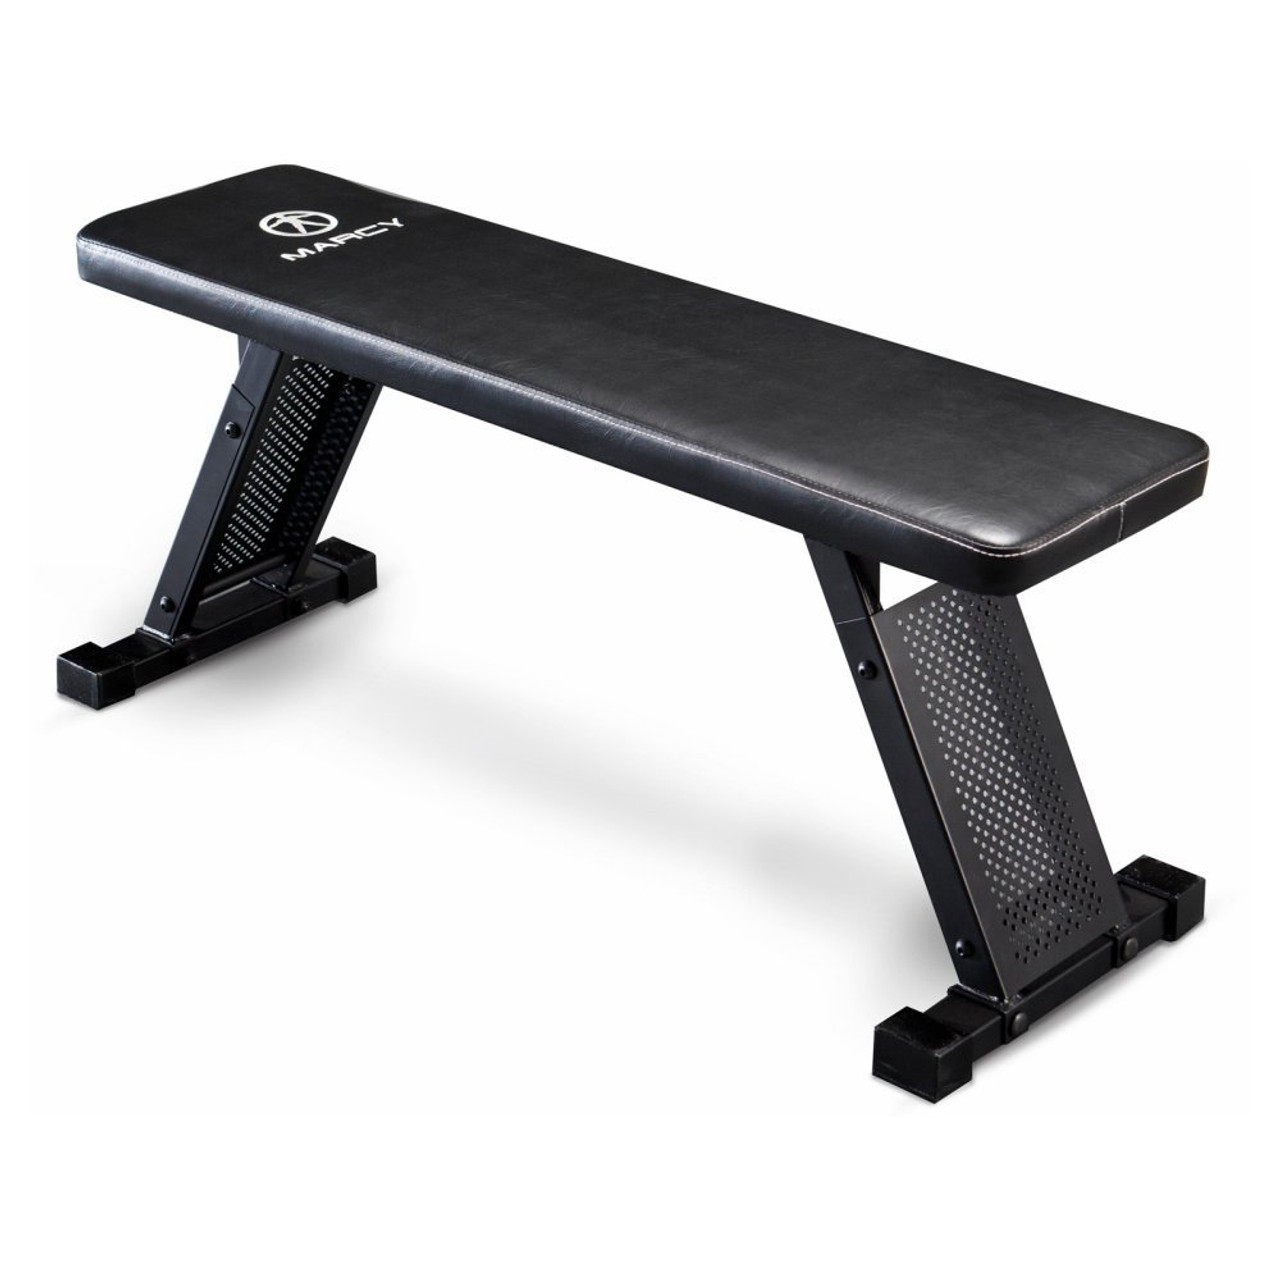 Marcy Flat Bench Sb 1315 Quality Heavy Duty Strength